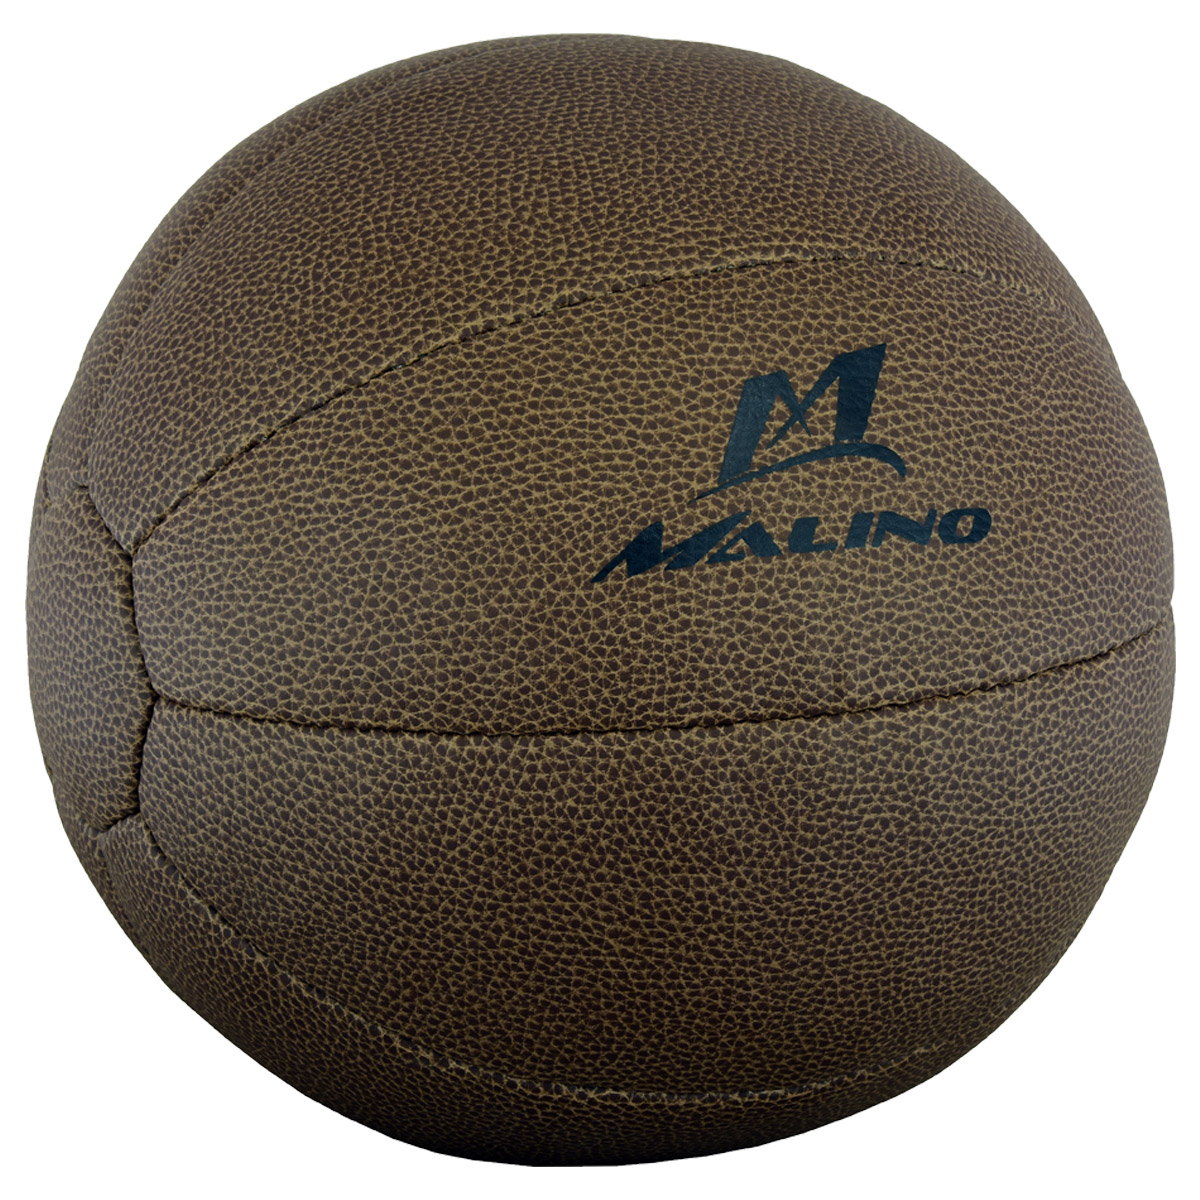 Malino Artificial Leather Medicine Ball Dark Brown